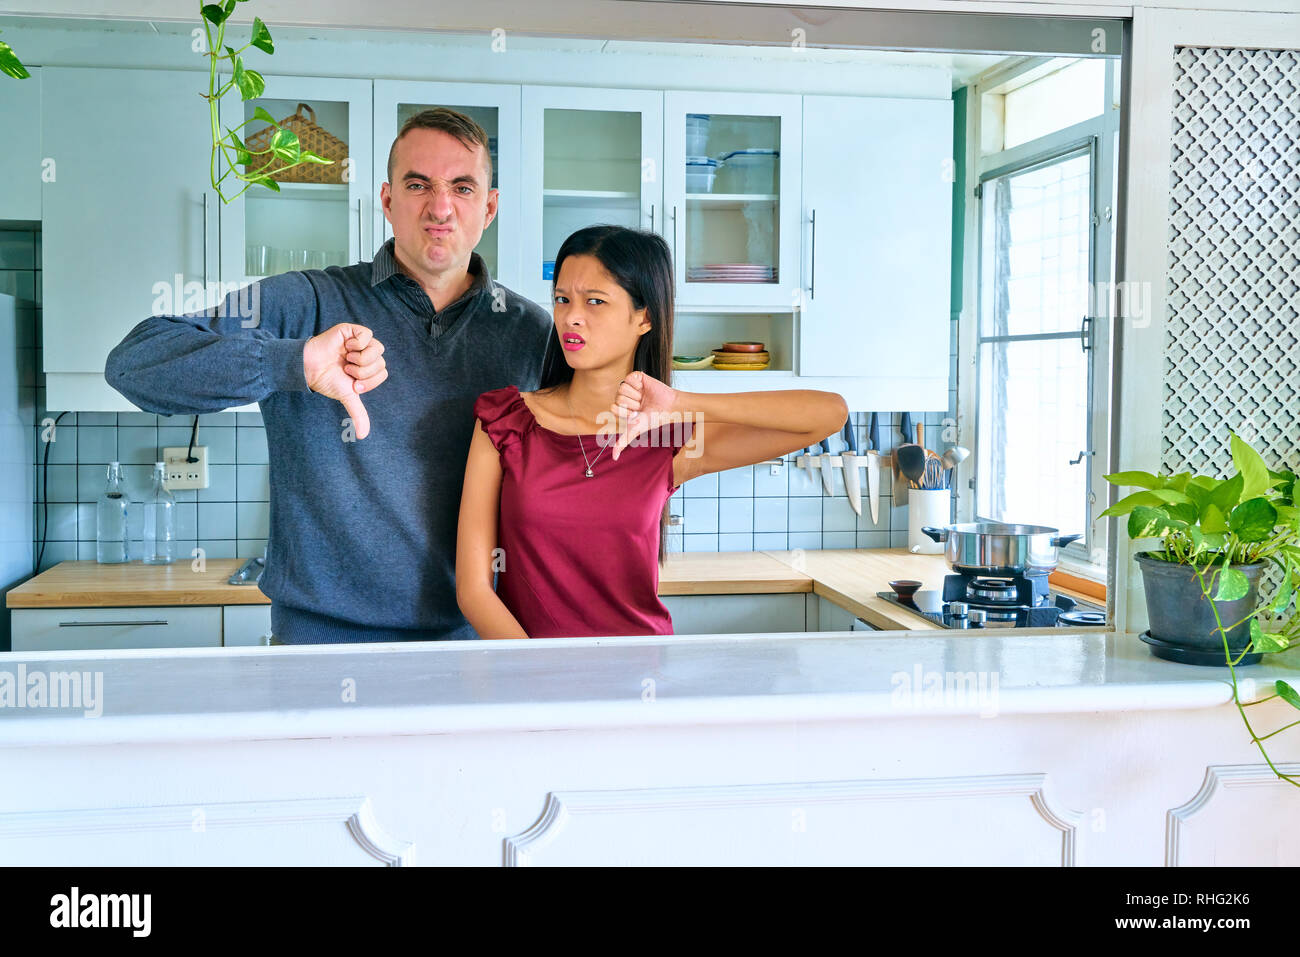 Disappointment couple showing dislike with thumbs down. - Stock Image